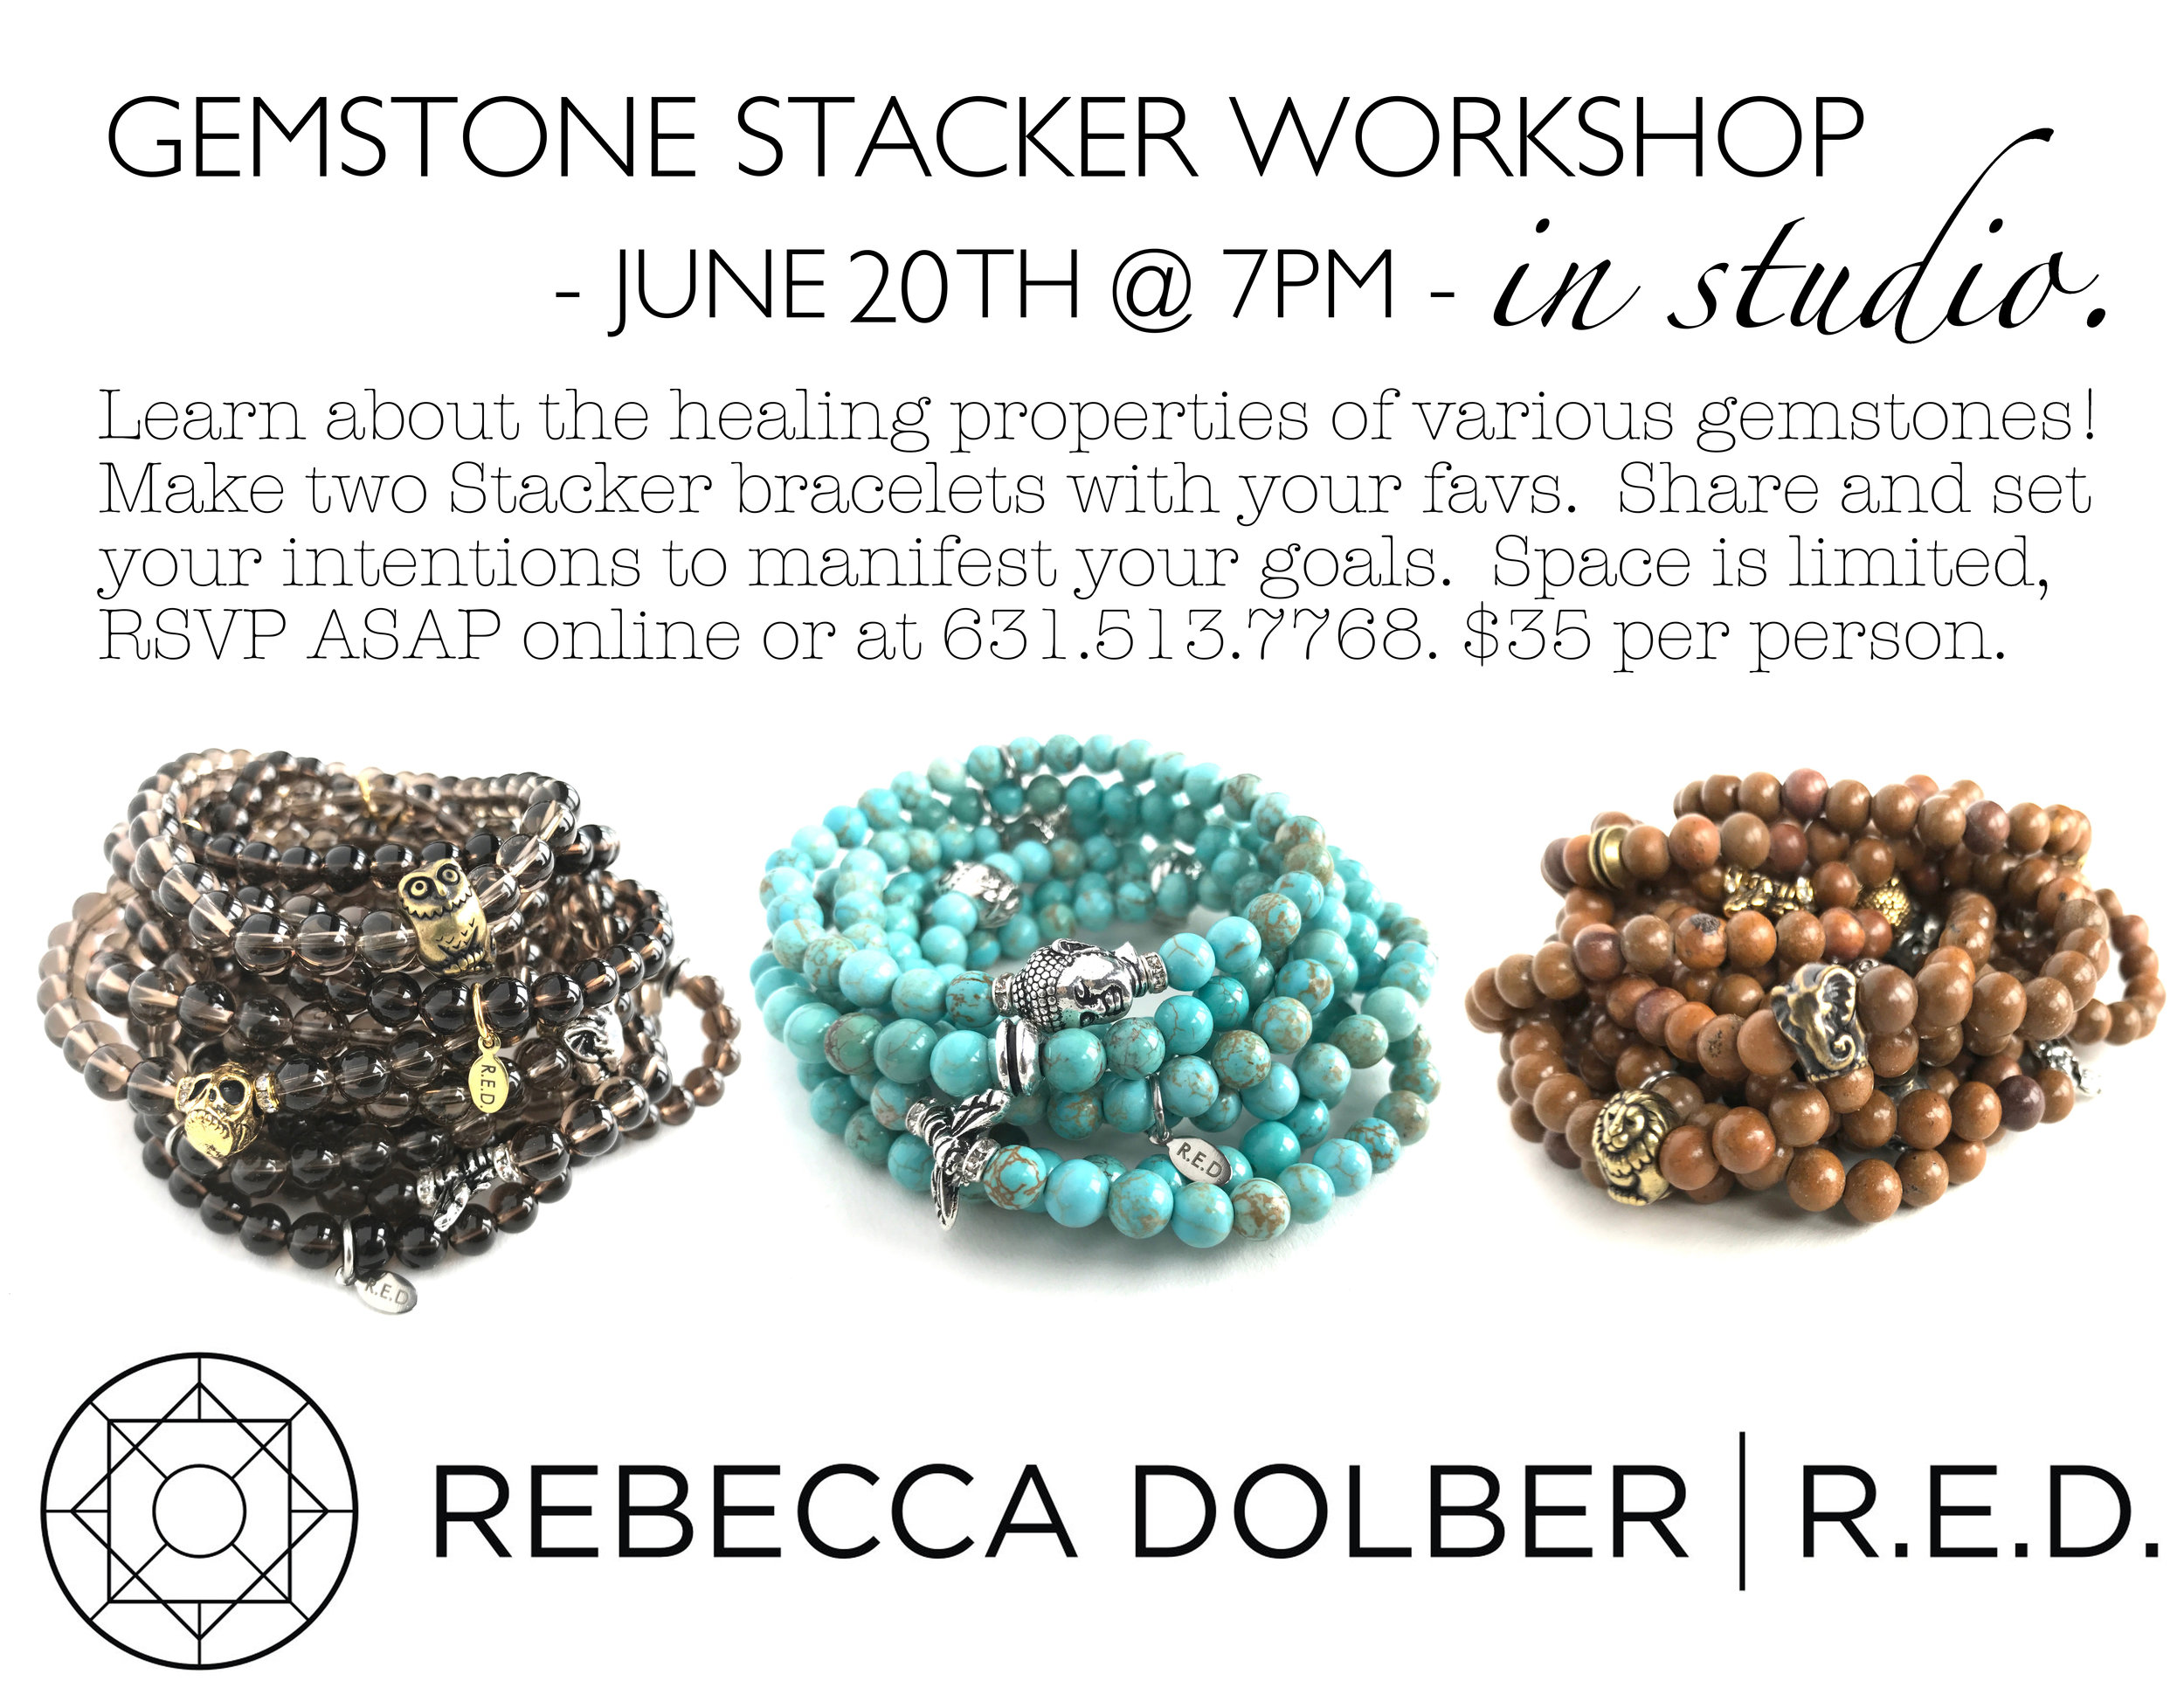 gemstone stacker workshop.jpg